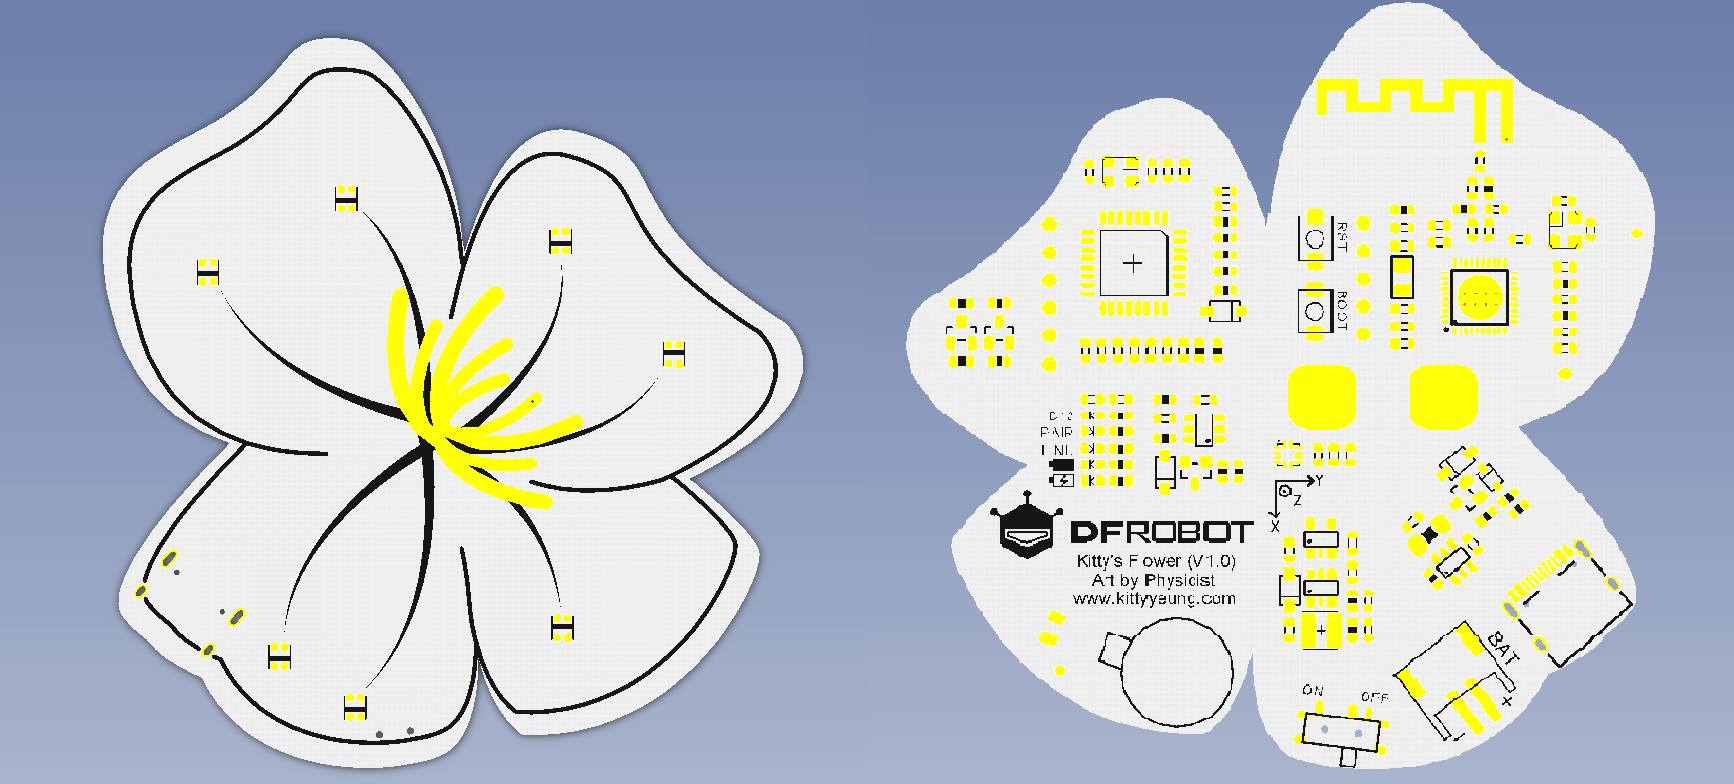 DFR0748 Overview